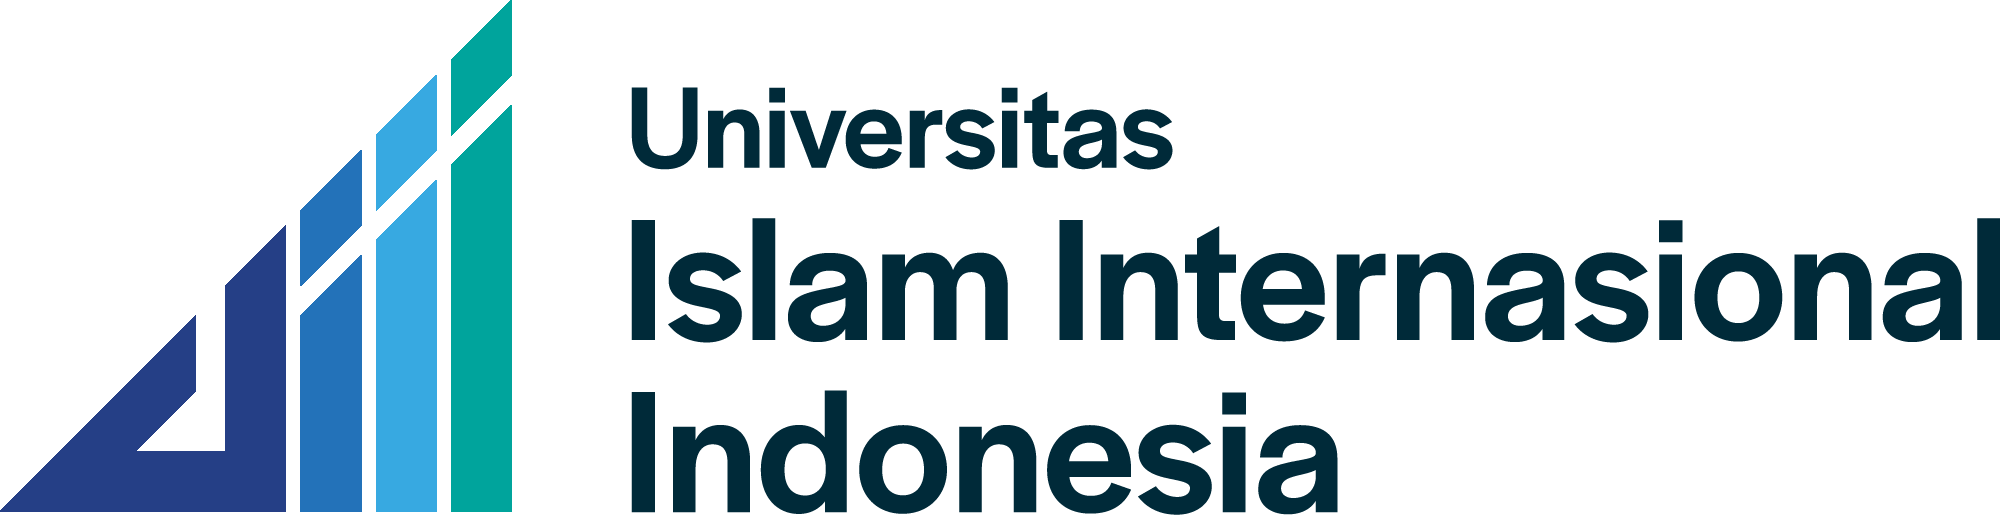 Universitas Islam Internasional Indonesia - Bahasa Indonesia